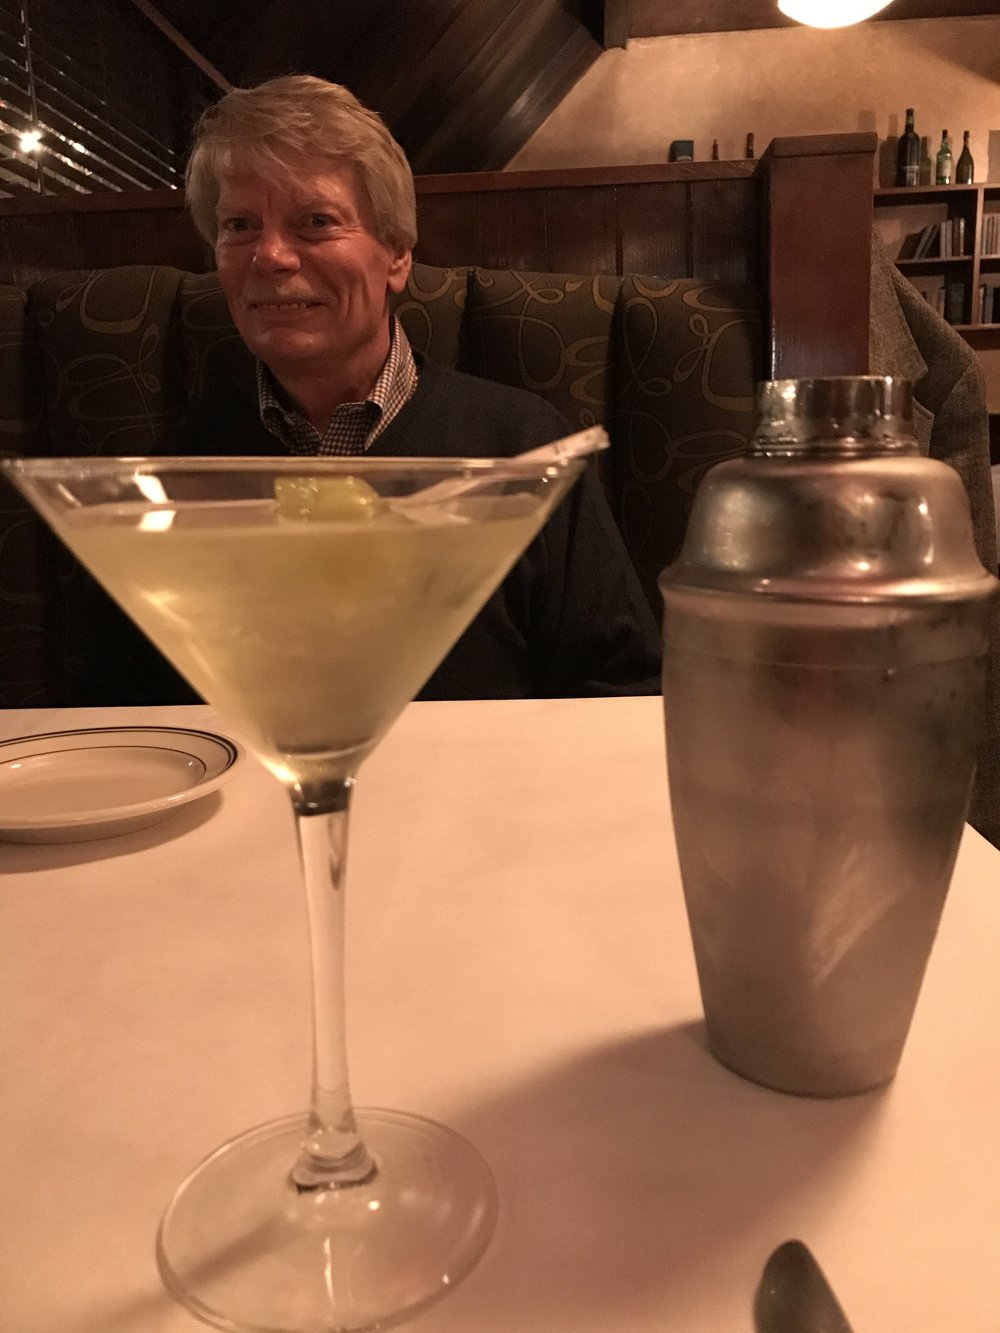 Better than James Bond: Charles Currier. And a Chili Peppa Martini.